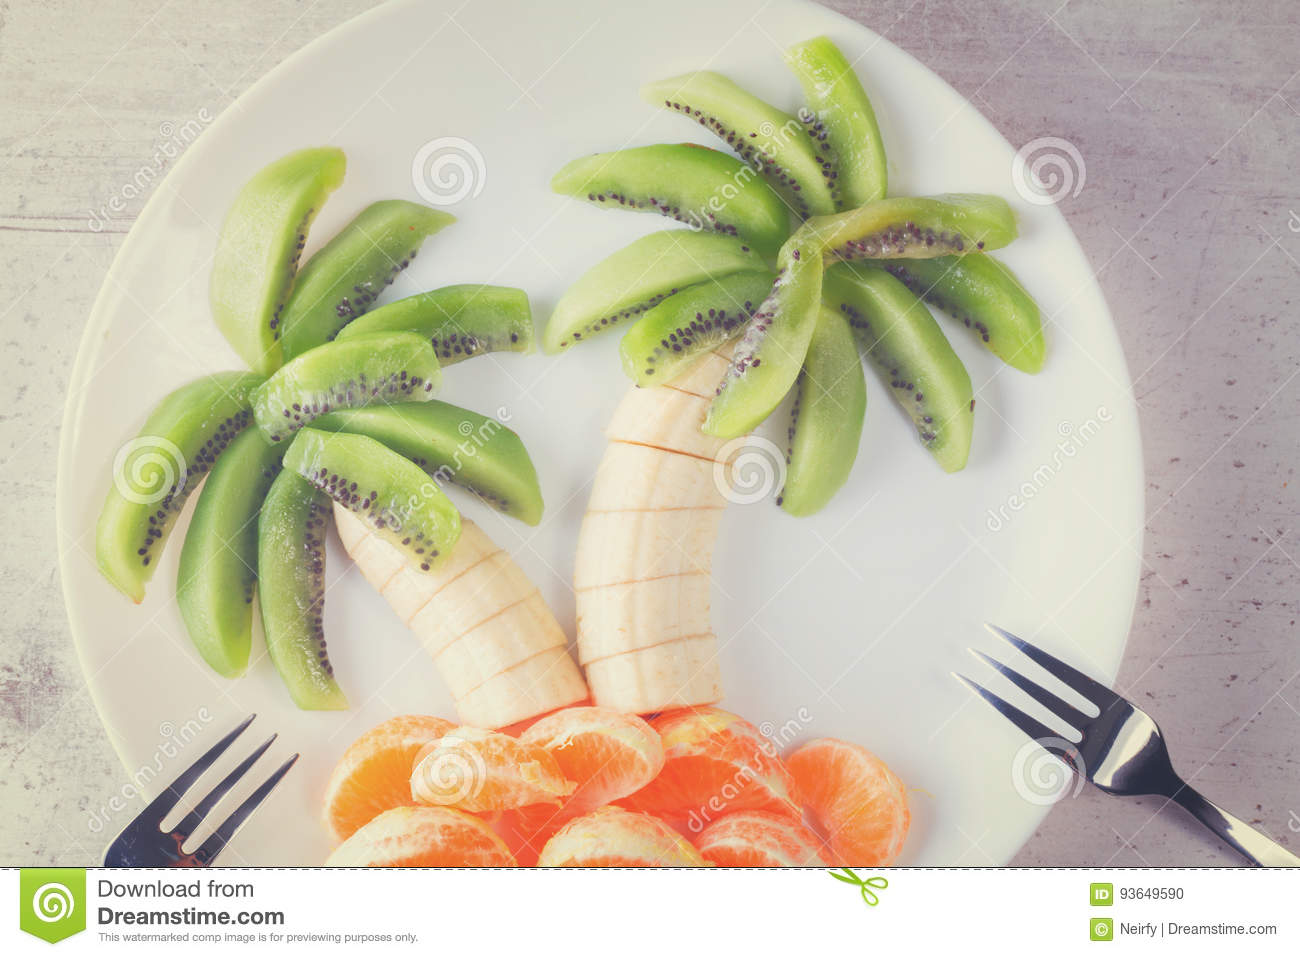 Fruit Salad In Form Of Tropical Plams Stock Photo - Image of